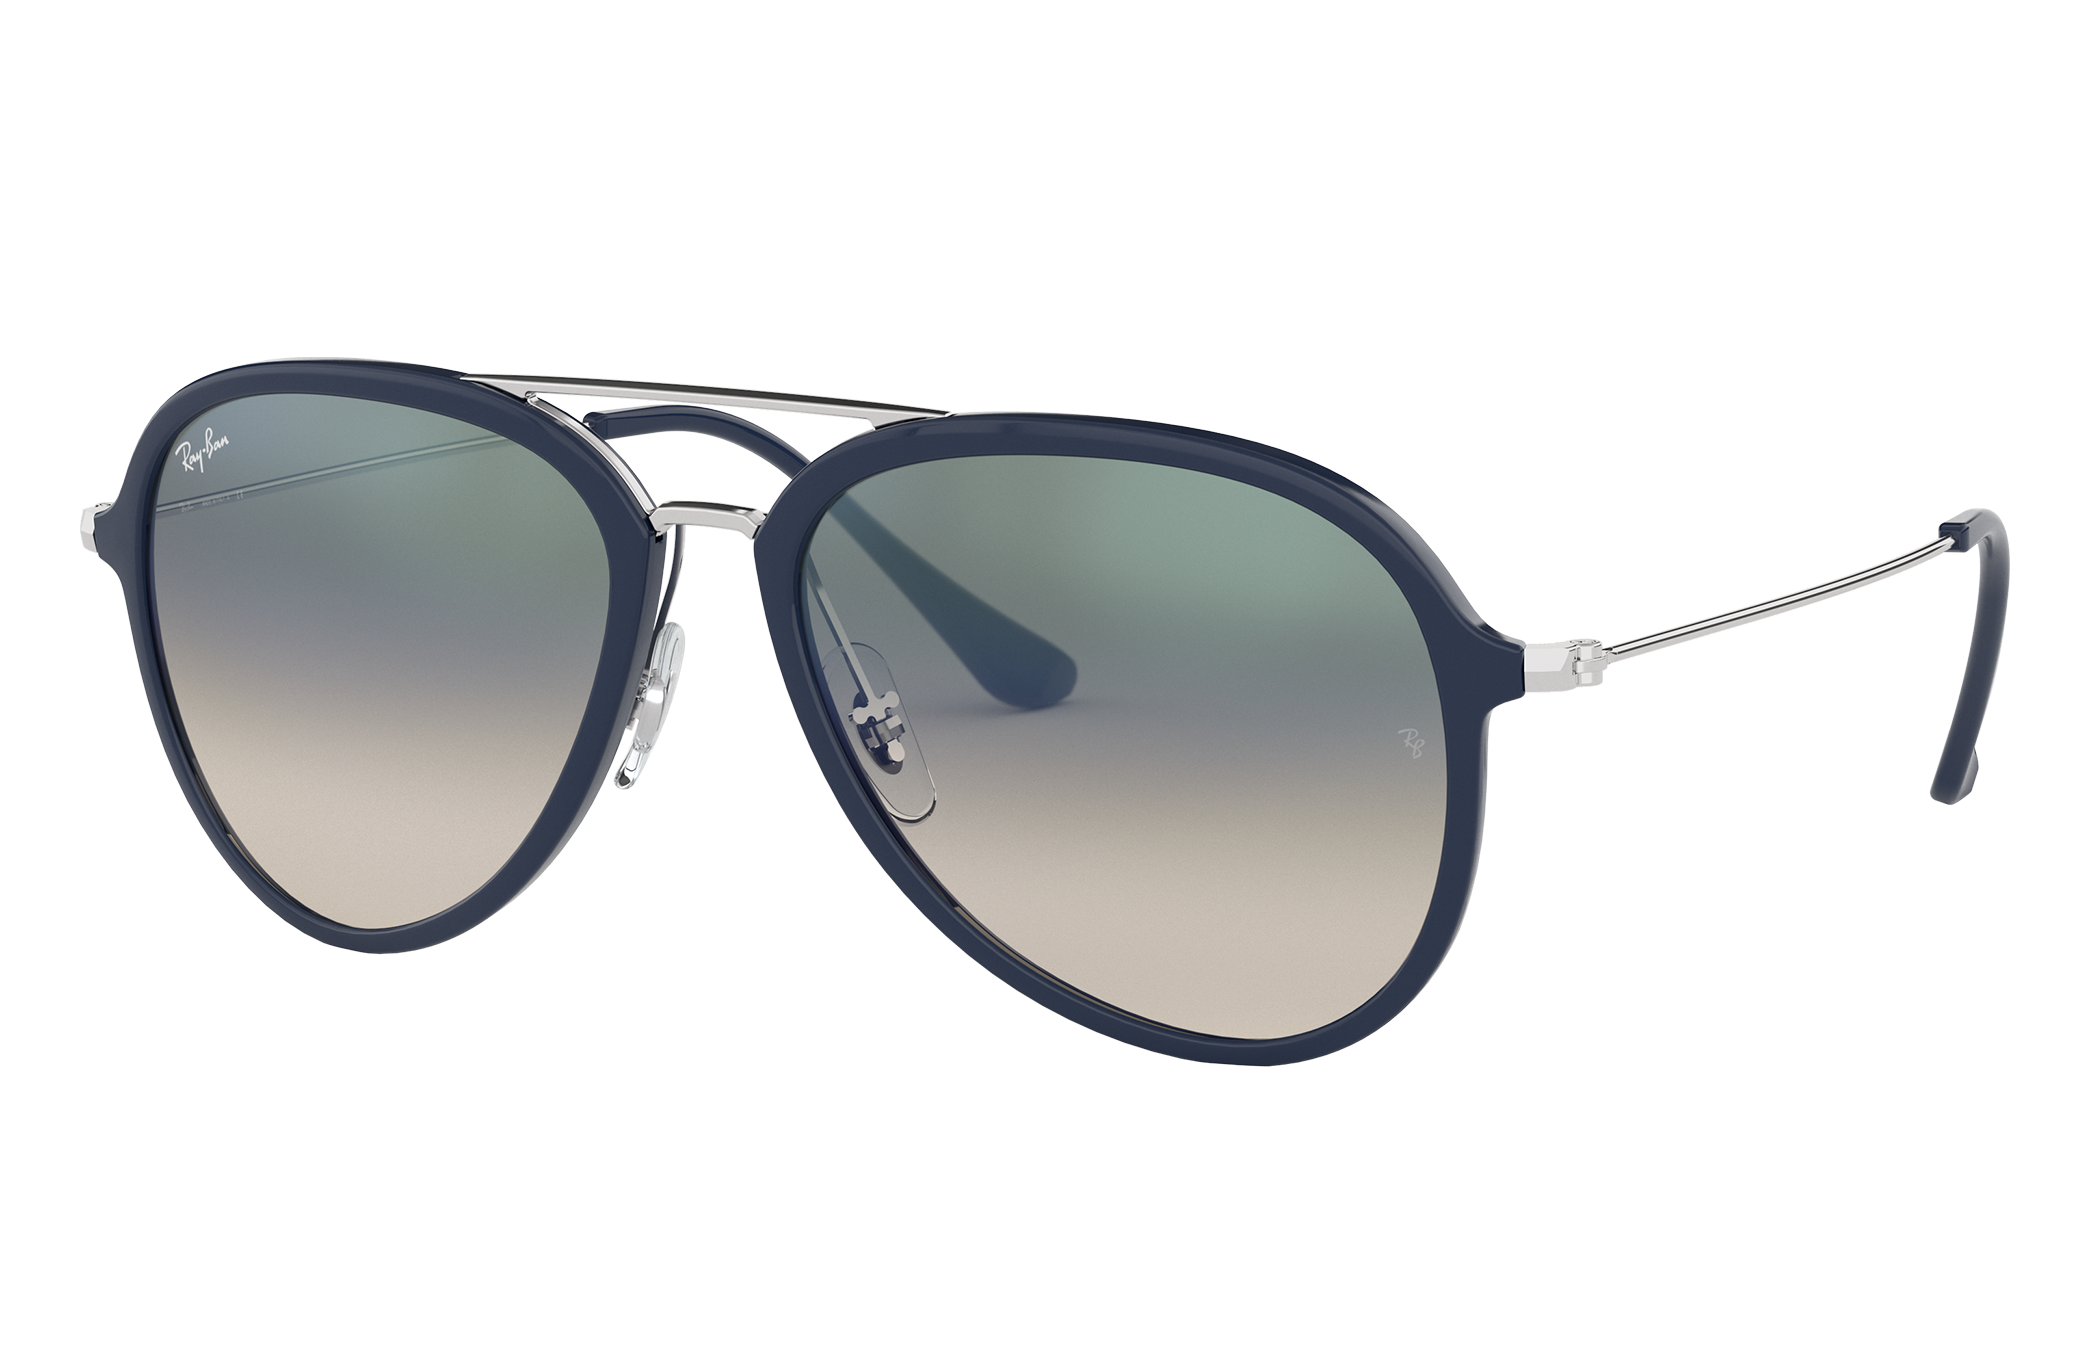 Ray-Ban Rb4298 Silver, Green Lenses - RB4298